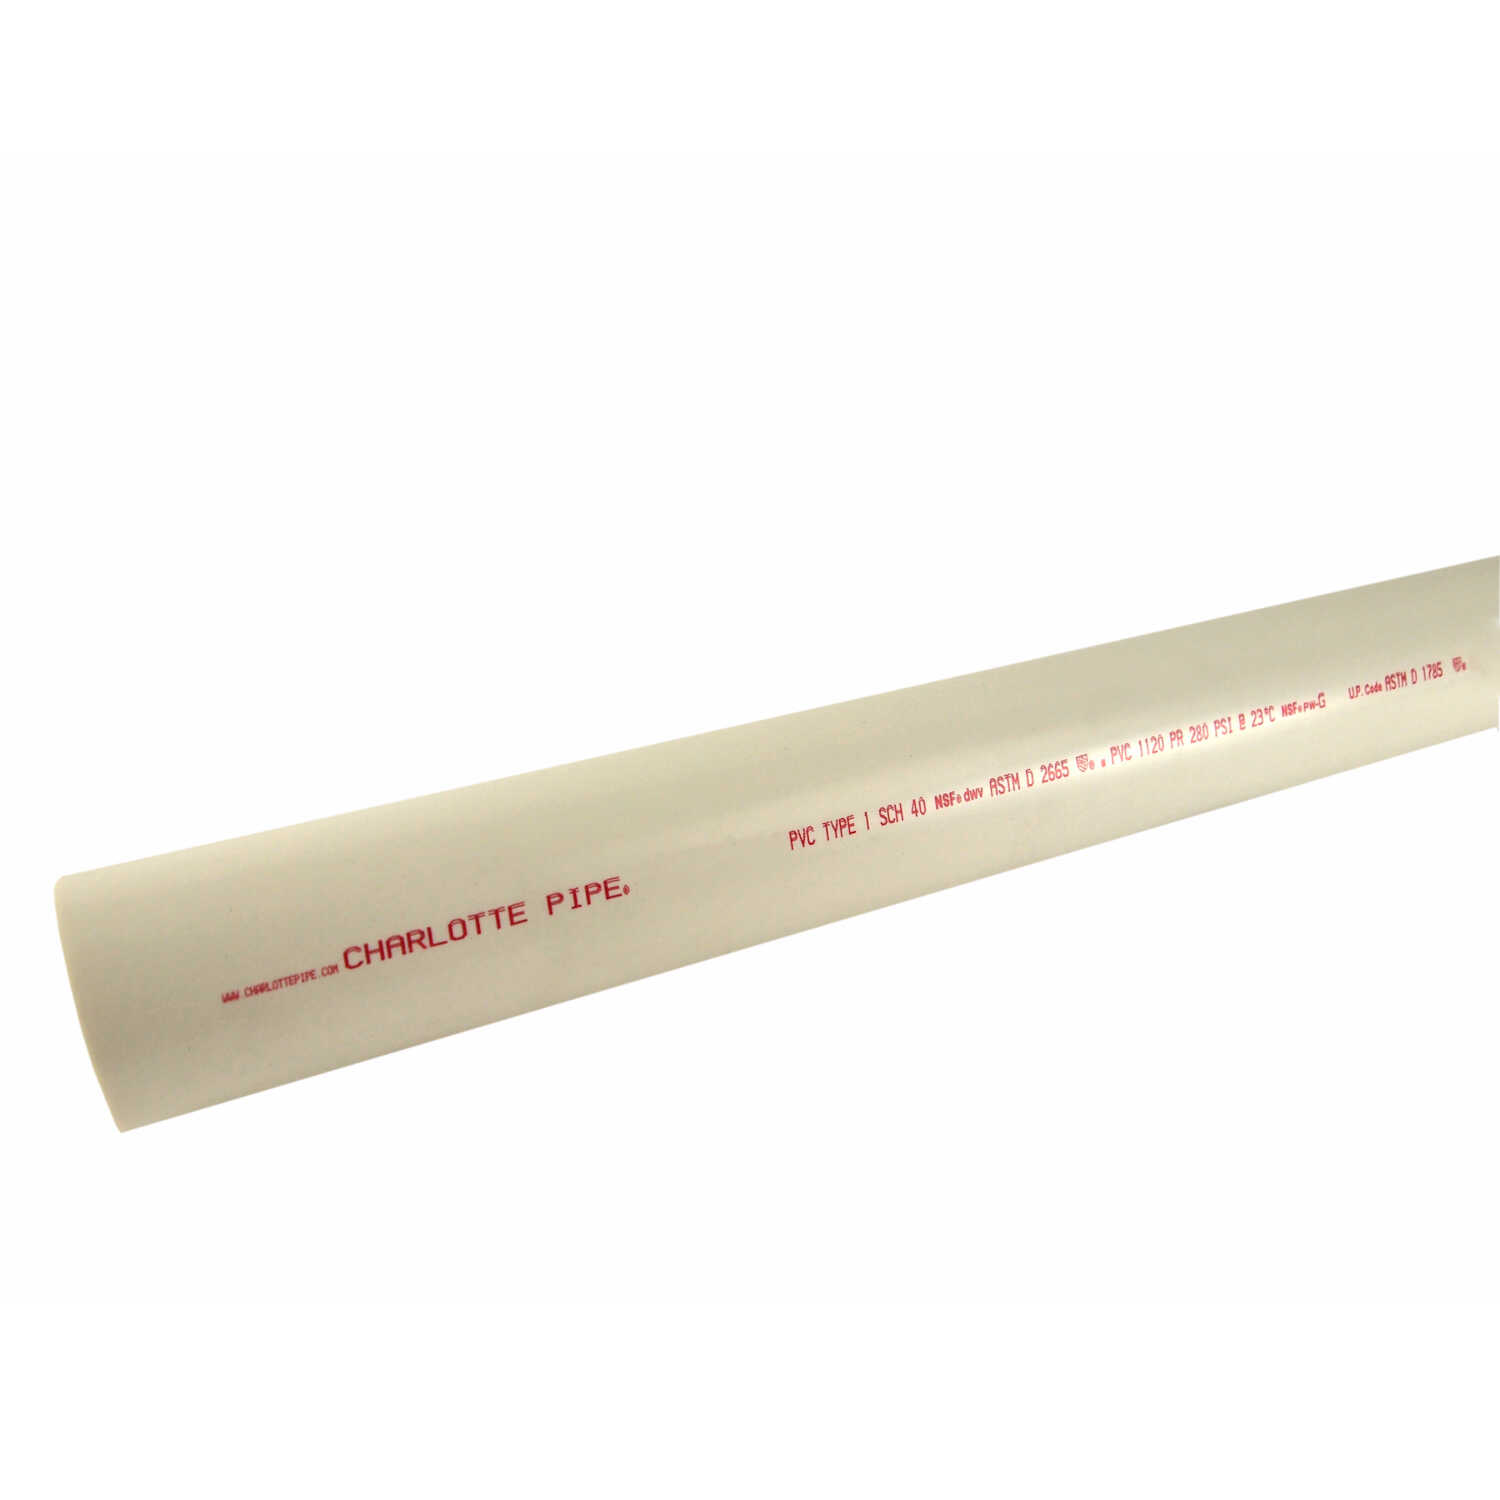 Charlotte Pipe  PVC Pipe  6 in. Dia. x 10 ft. L Plain End  Schedule 40  180 psi